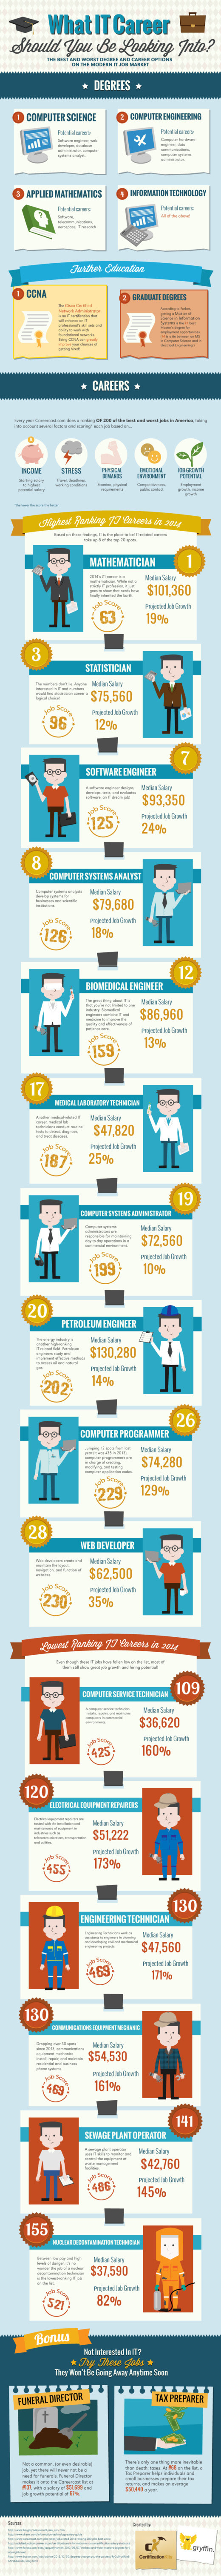 Infographic: What IT Career Should You Be Looking Into #infographic